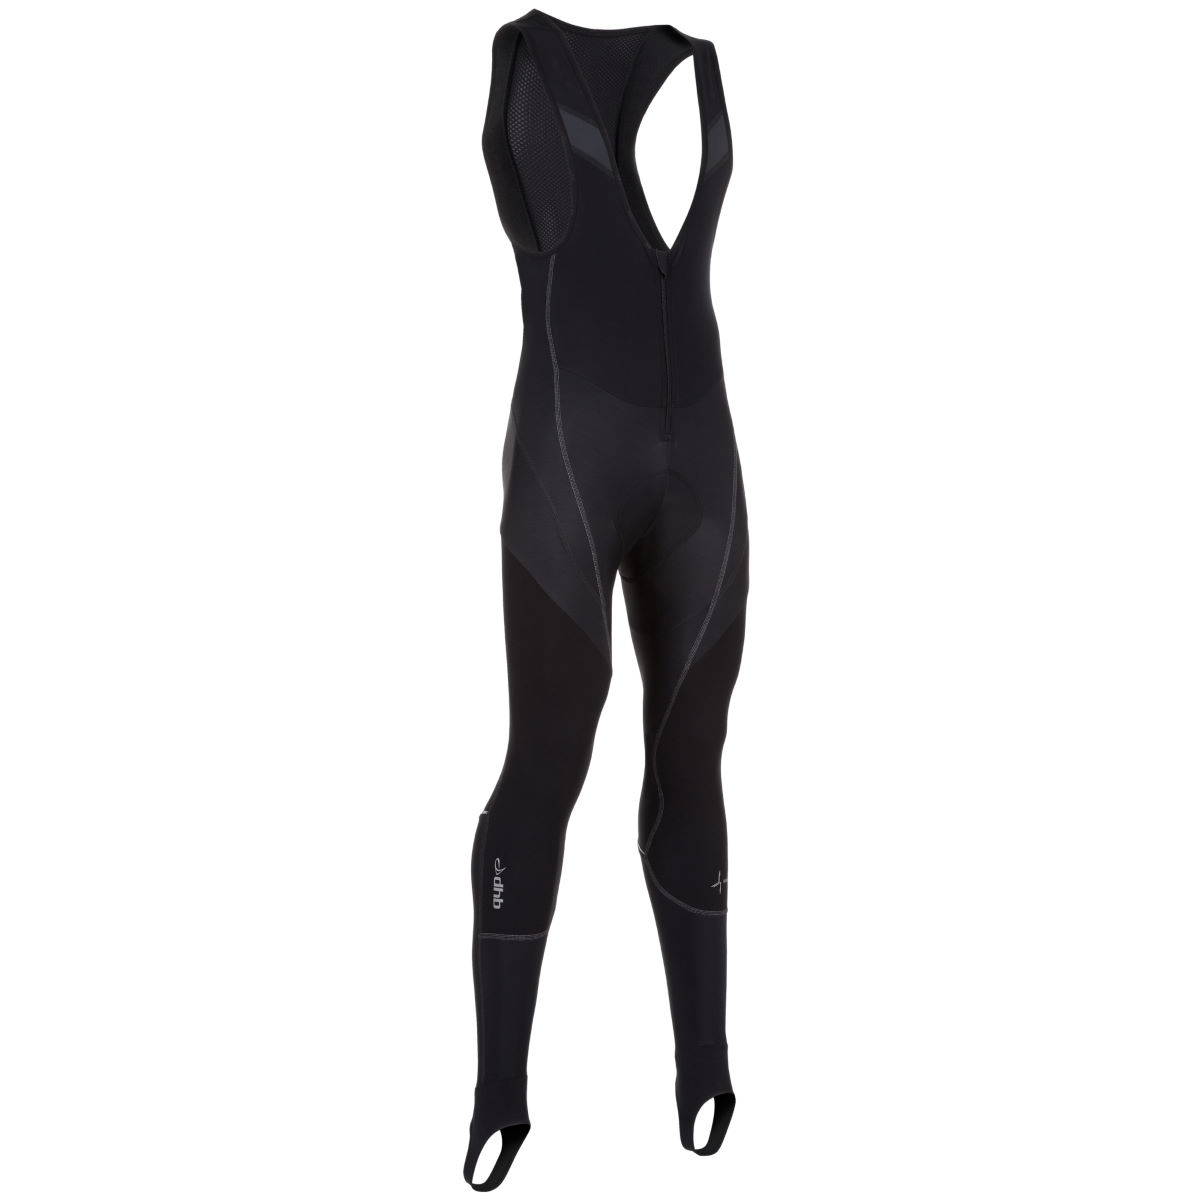 dhb Vaeon Zero Padded Bib Tight